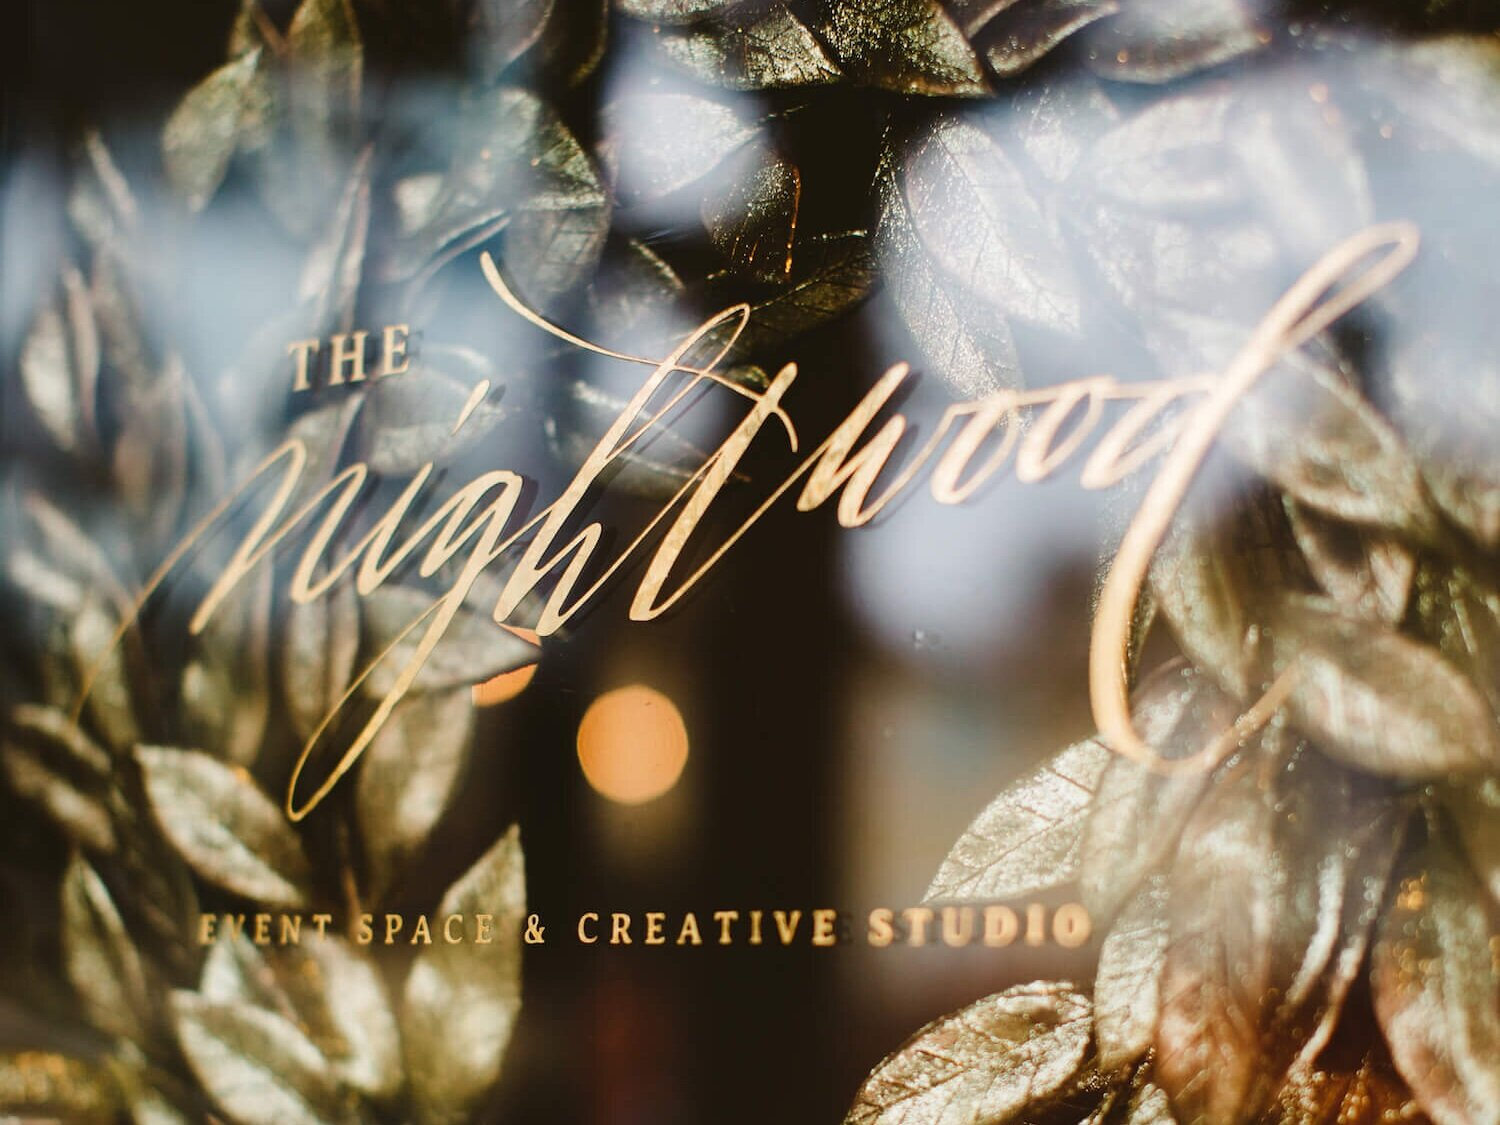 nightwood-event-space-creative-studio+%281%29.jpg